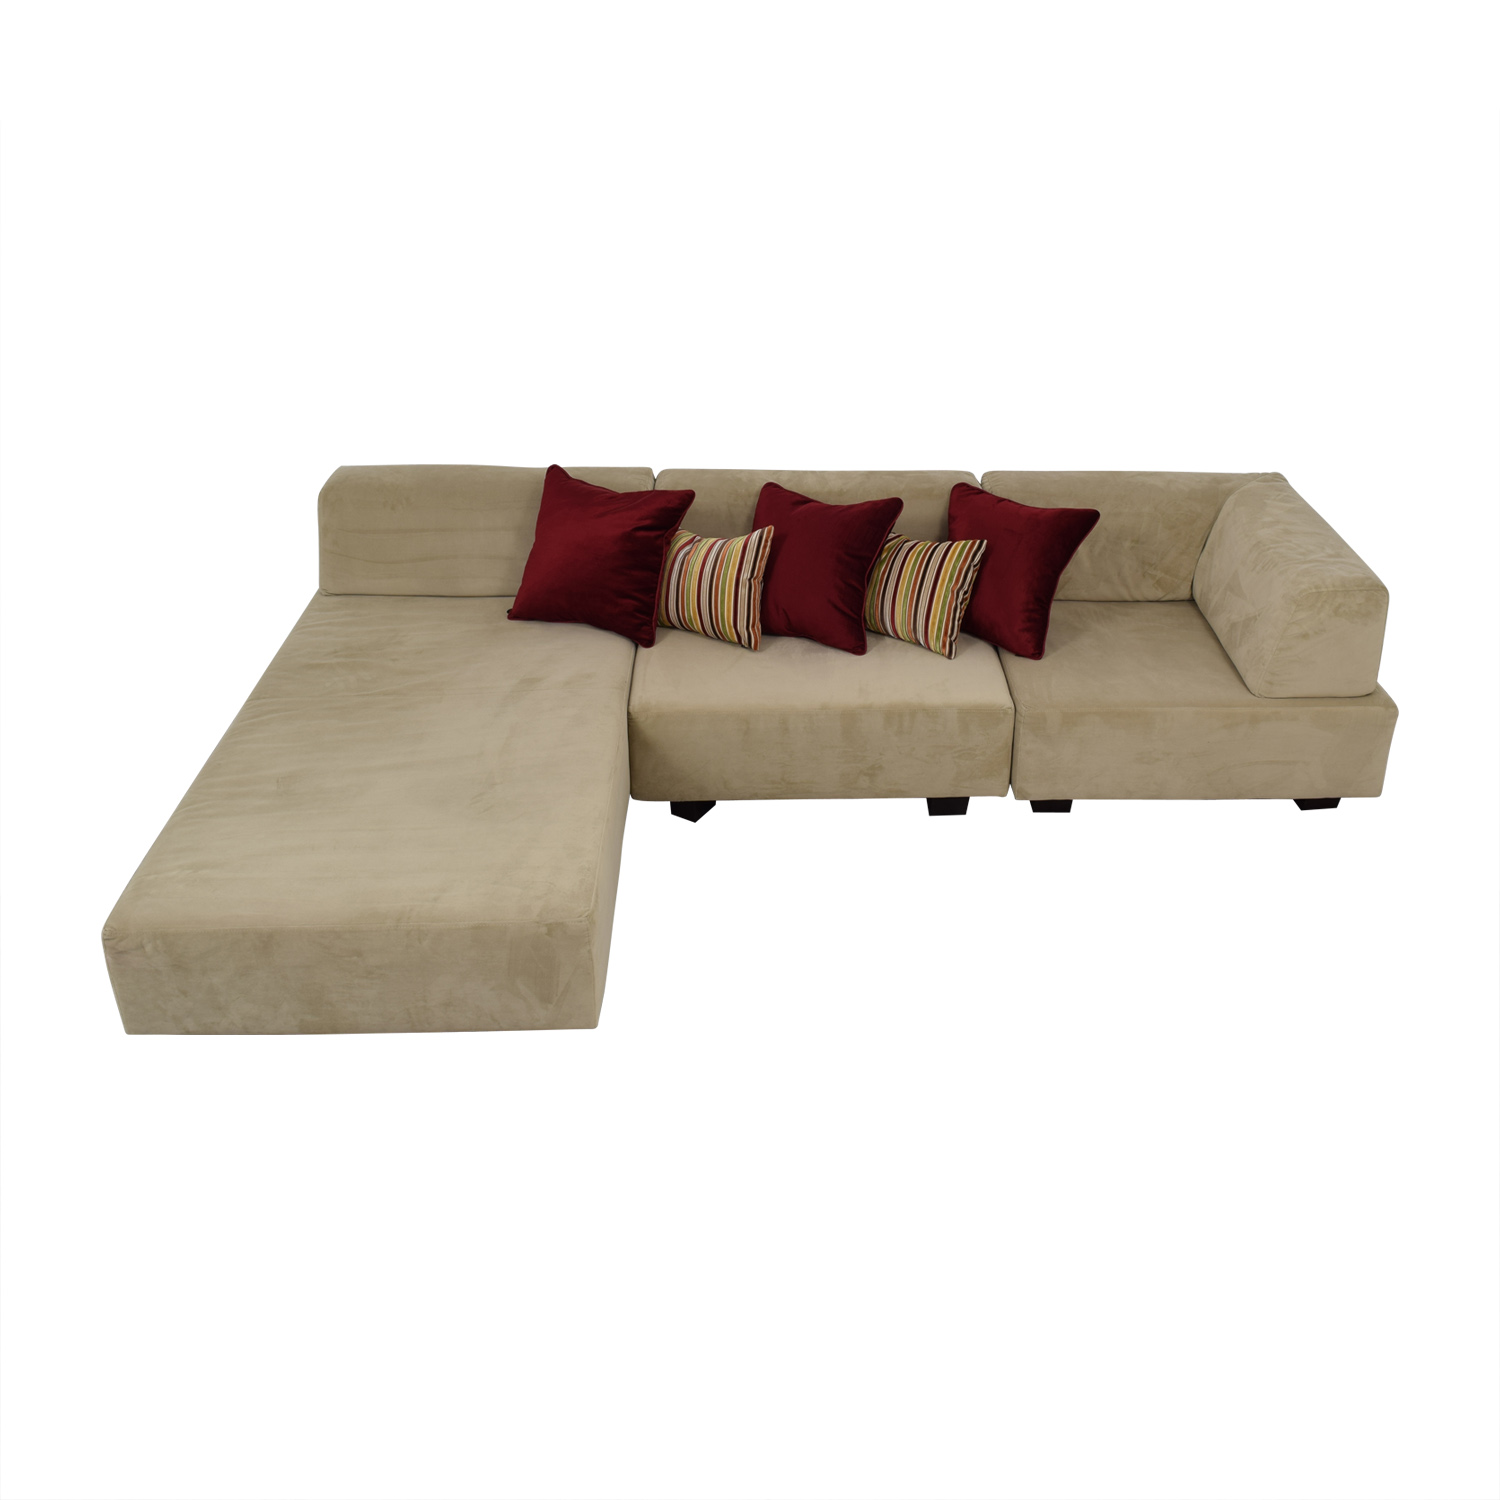 West Elm West Elm Tillary Beige Chaise Sectional for sale